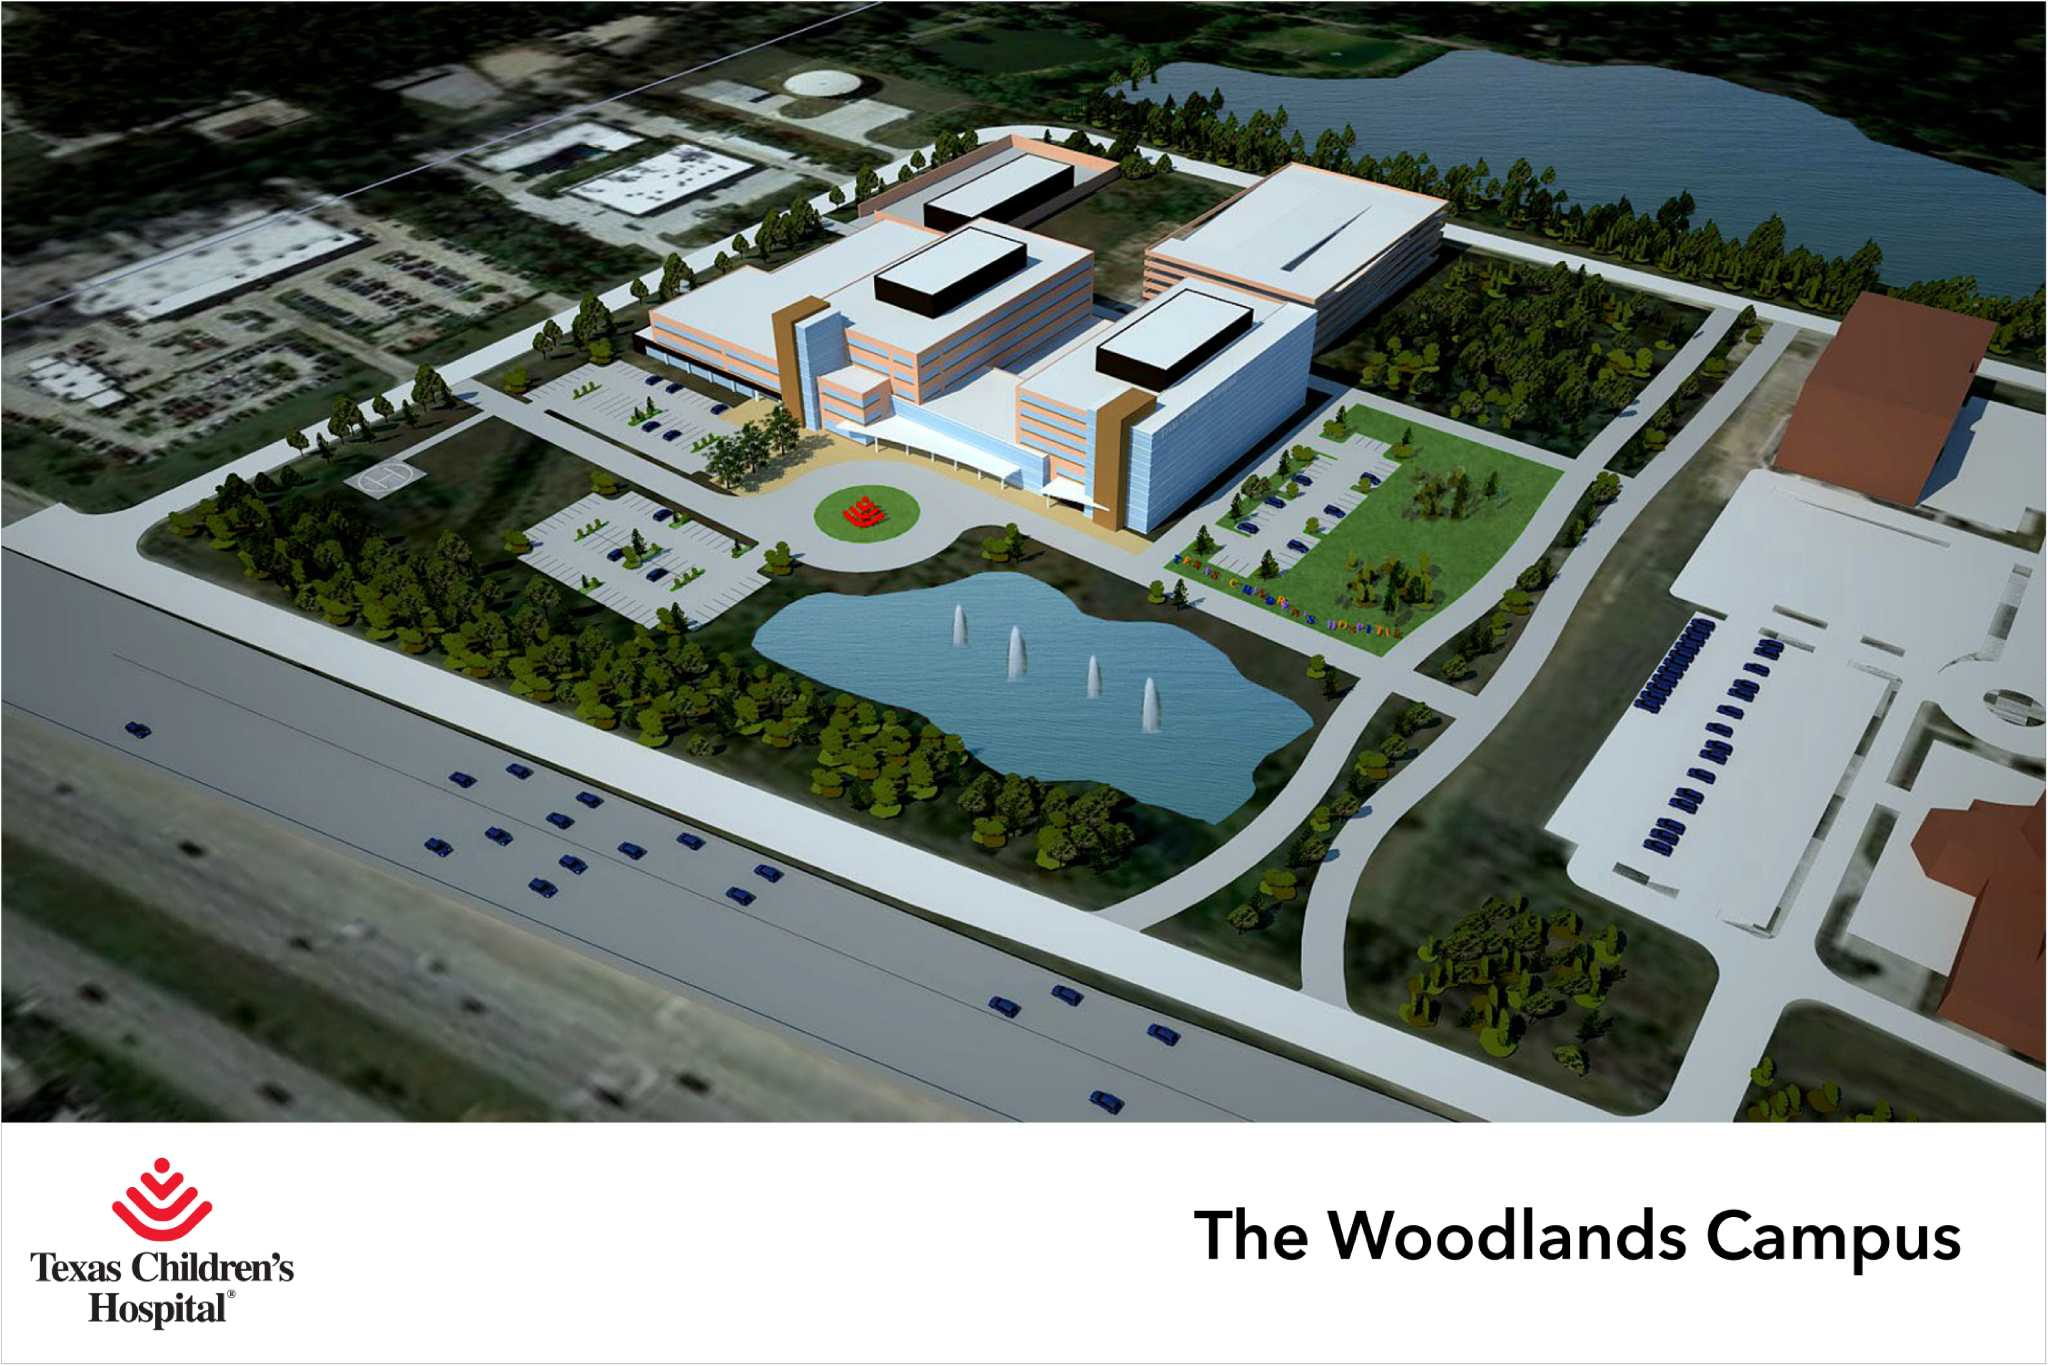 Growth brings new medical options to The Woodlands - Houston